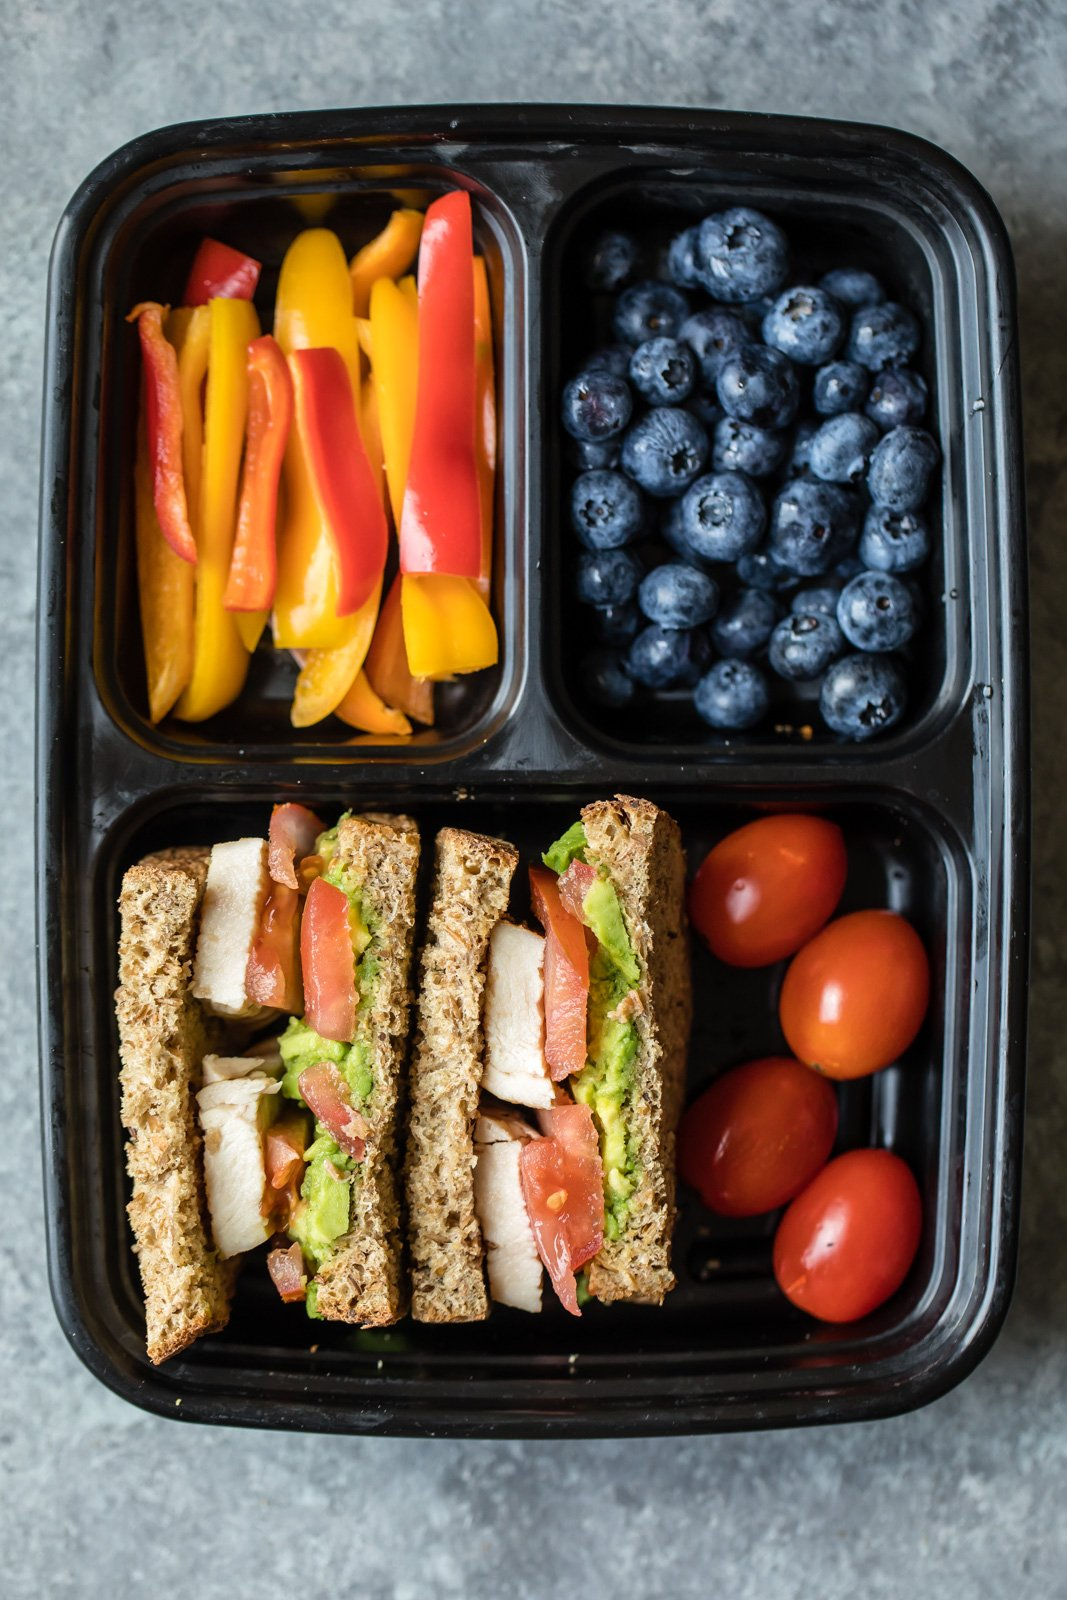 chicken sandwich, pepper slices, grape tomatoes, and blueberries in a bento box